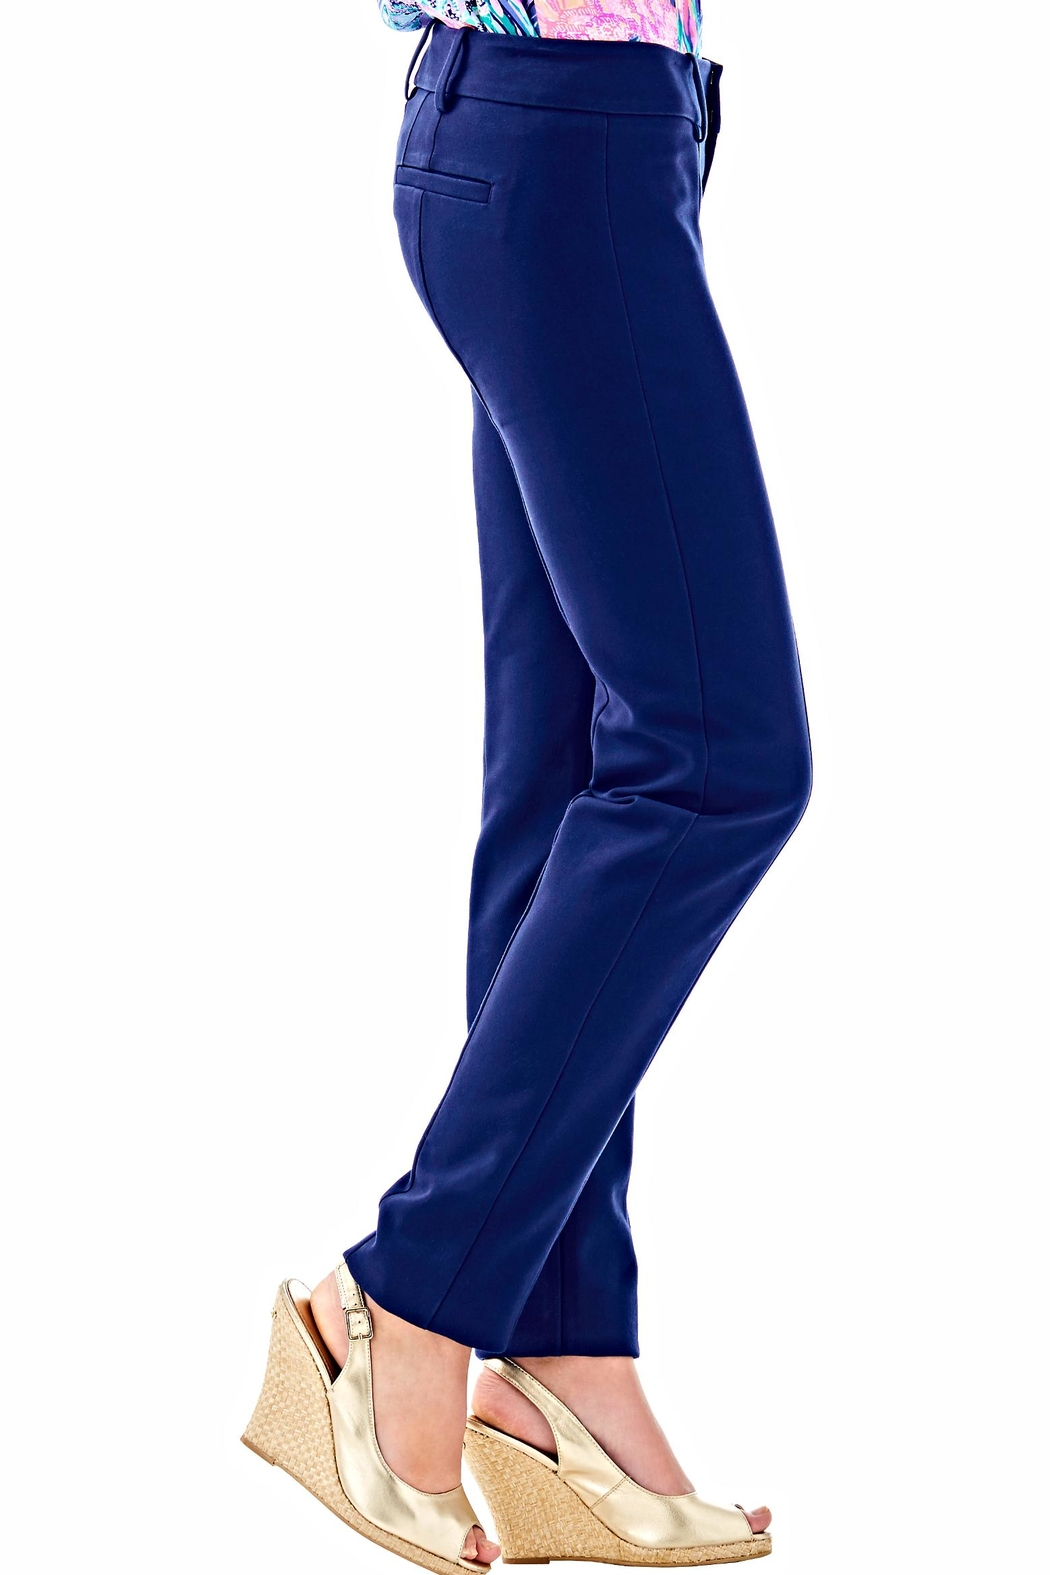 Lilly Pulitzer Chantal Stretch Pant - Side Cropped Image